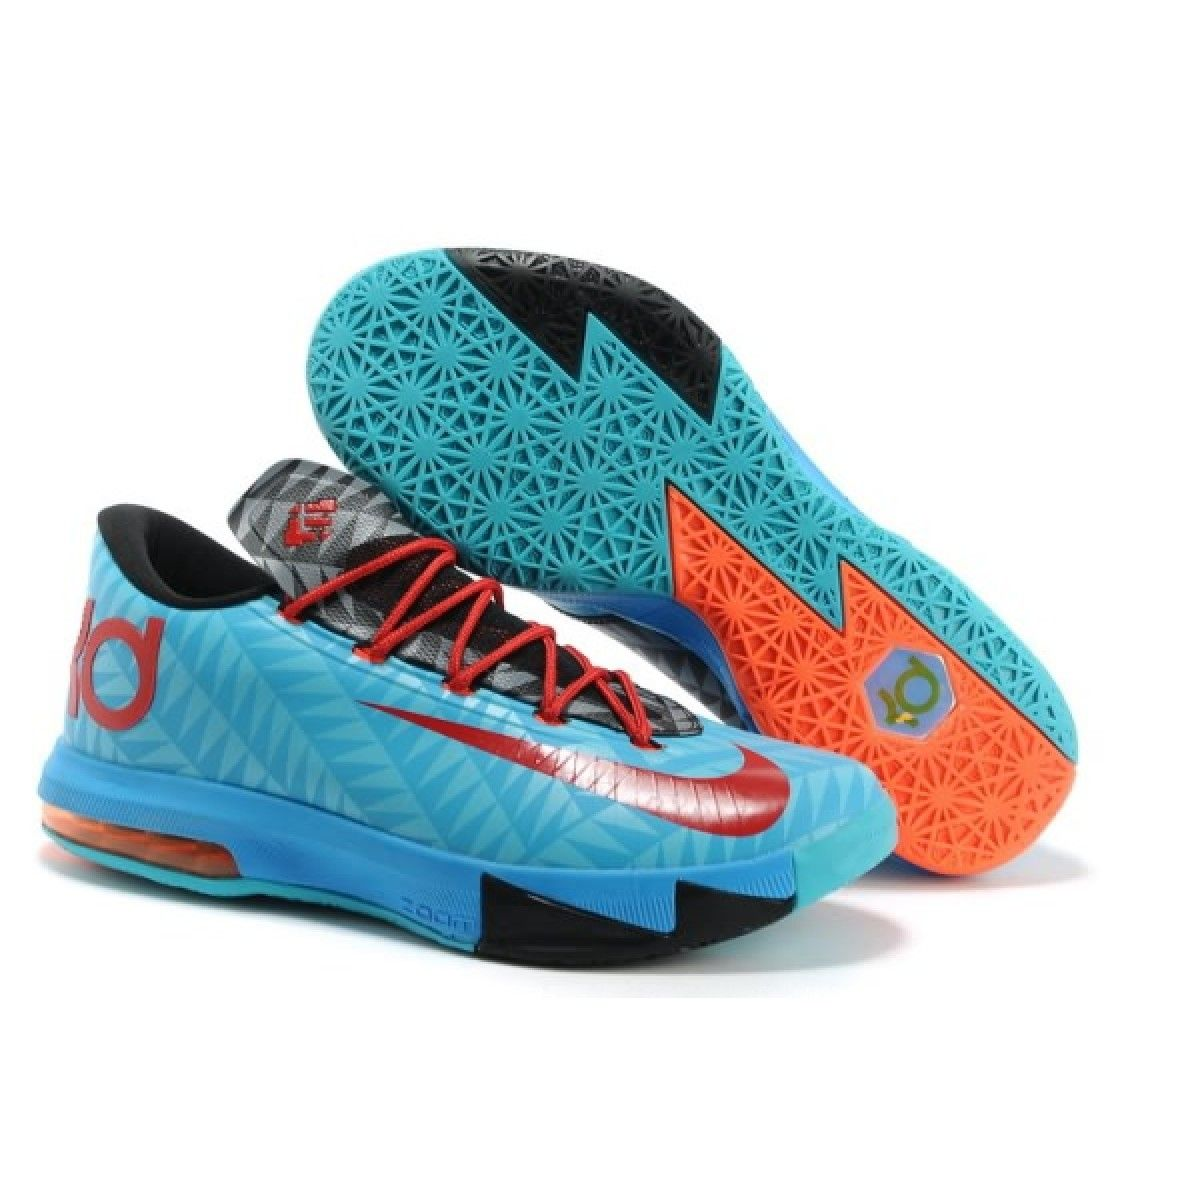 Discover the Nike Kevin Durant KD 6 VI Dark Turquoise/University Red-Black  For Sale Super Deals 312379 group at Pumarihanna. Shop Nike Kevin Durant KD  6 VI ...